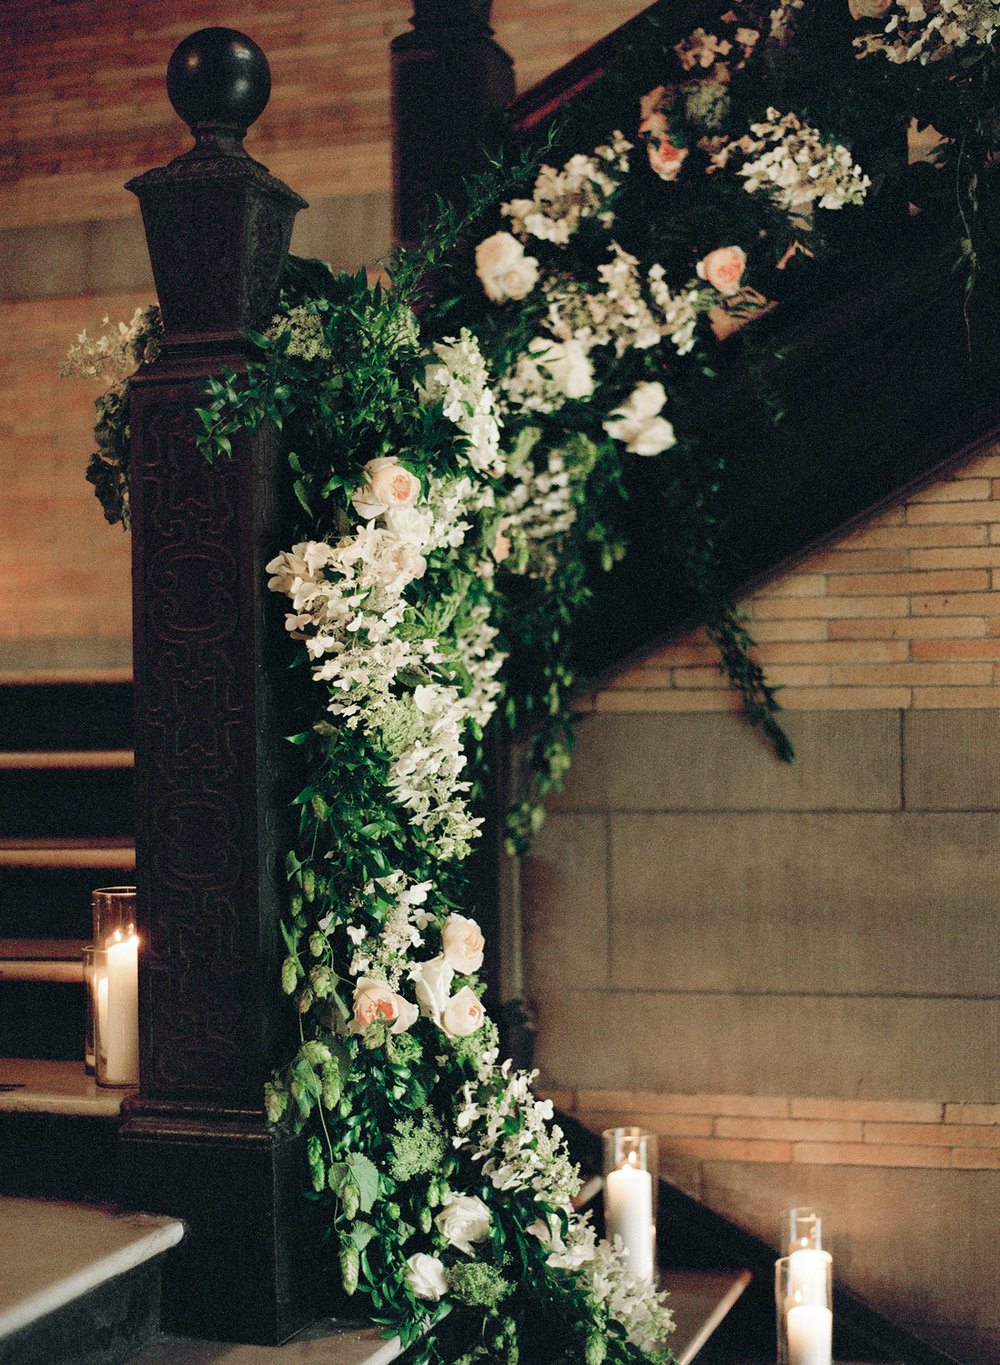 Old World NYC Wedding at the Highline Hotel - Flowers by Denise Fasanello Flowers - Photo by Heather Waraska 14.jpg